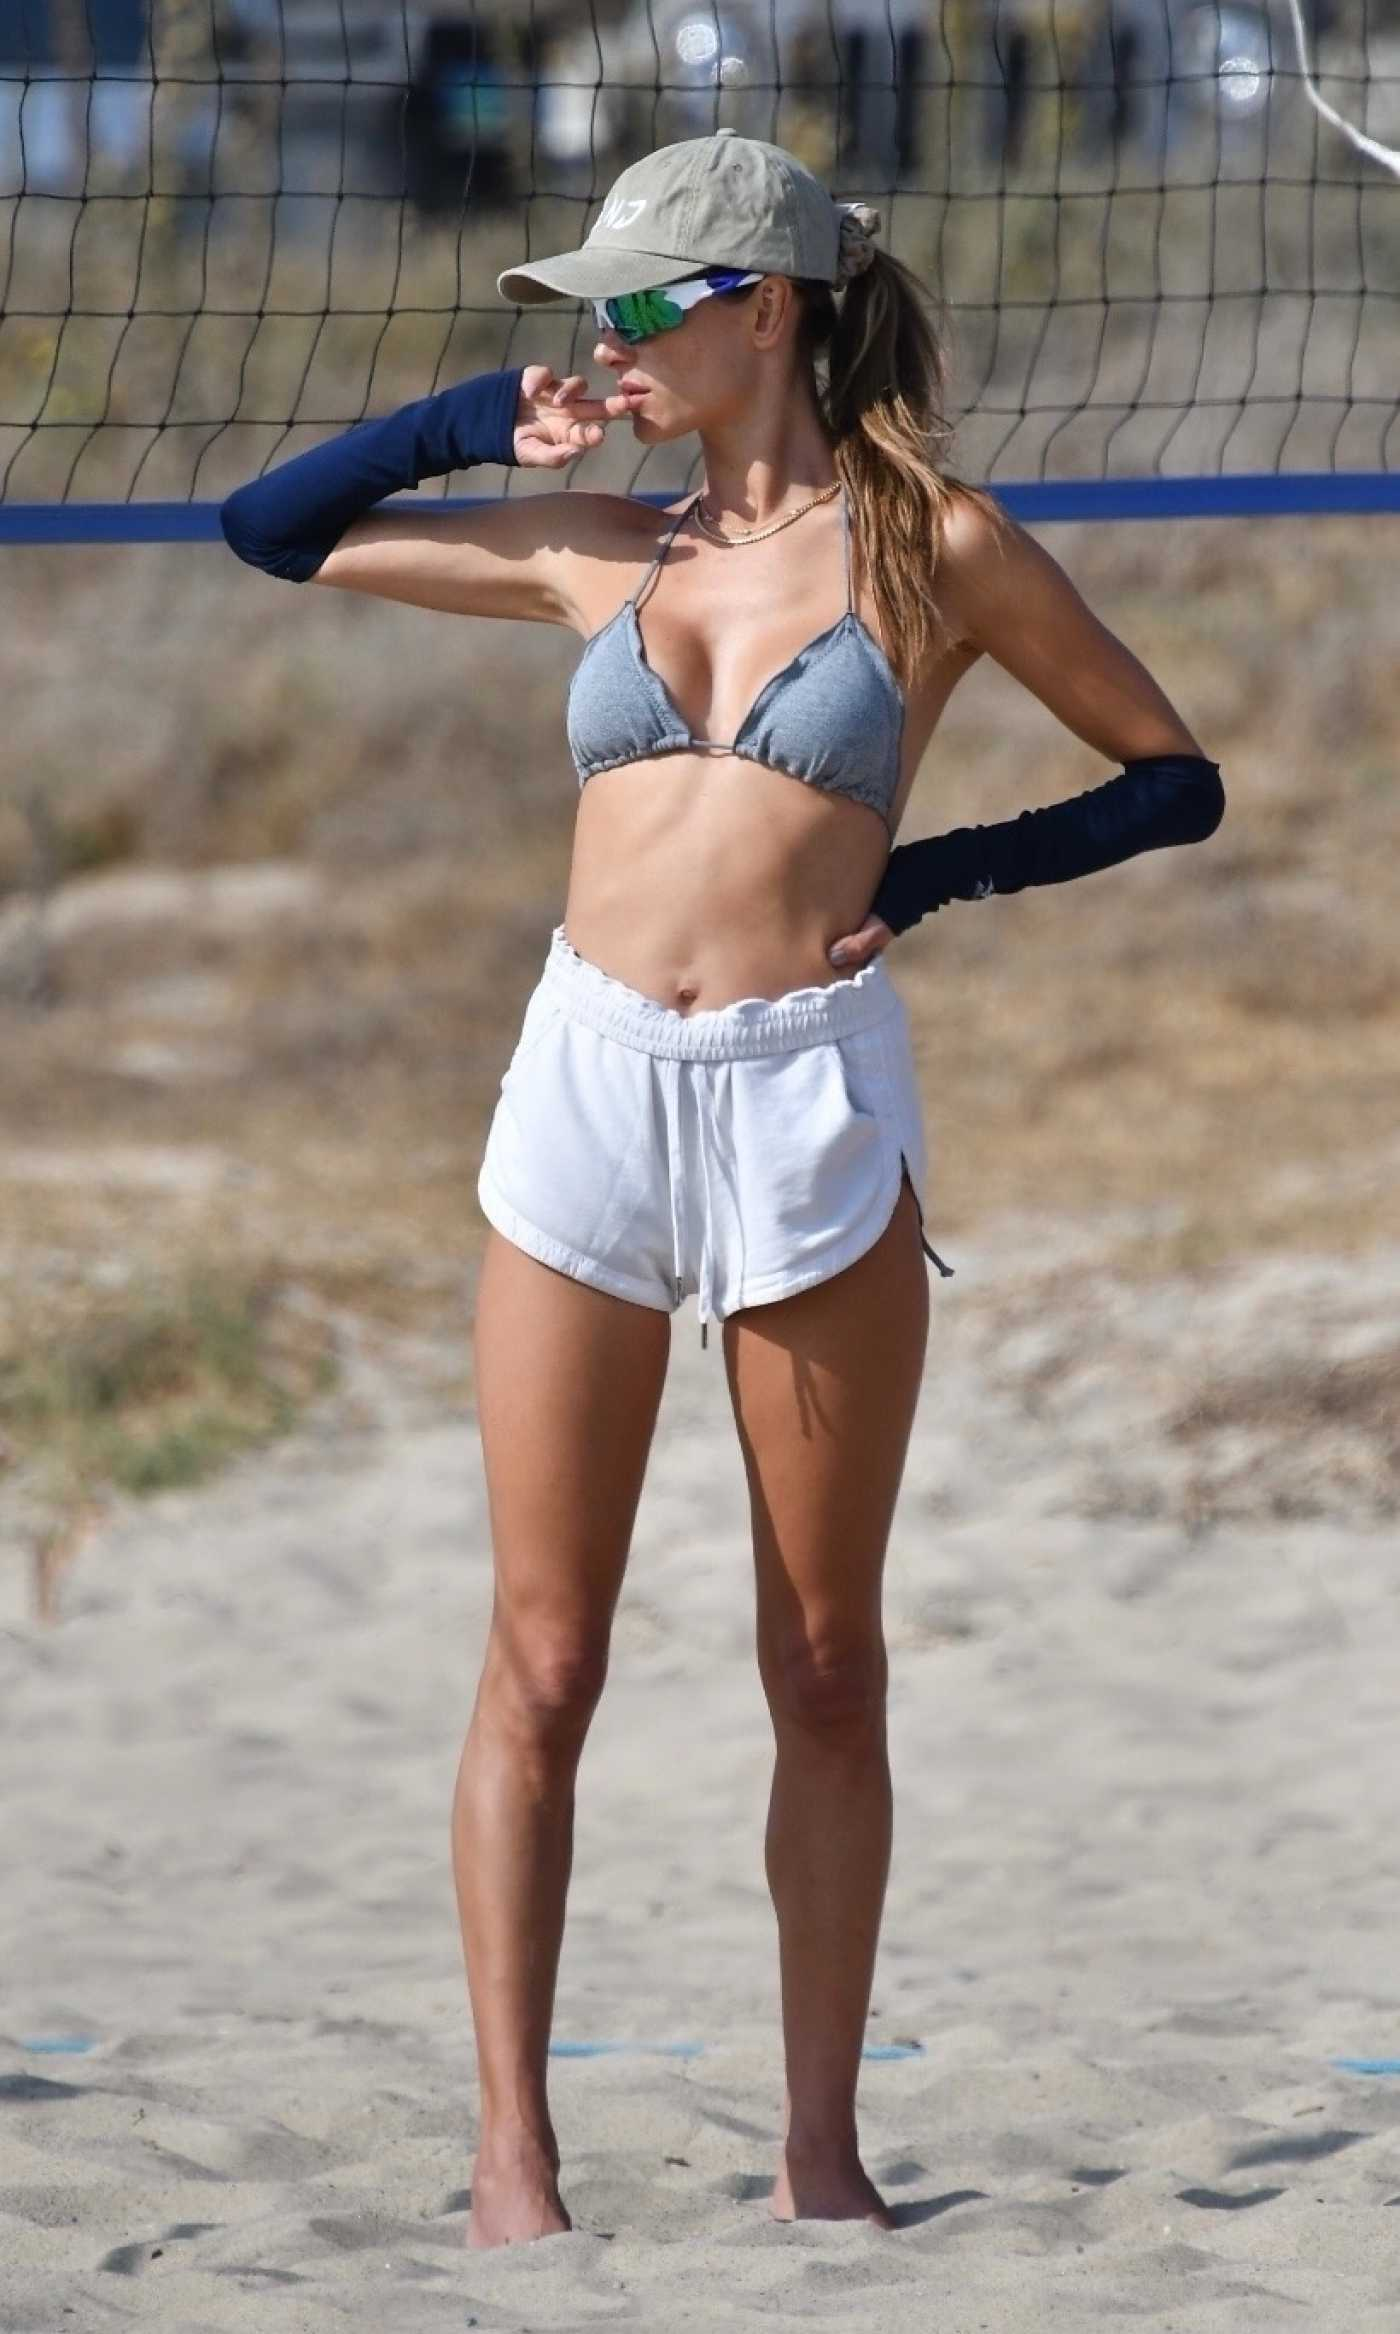 Alessandra Ambrosio in a Grey Bra Shows off Her Volleyball Skills in Santa Monica 10/10/2020